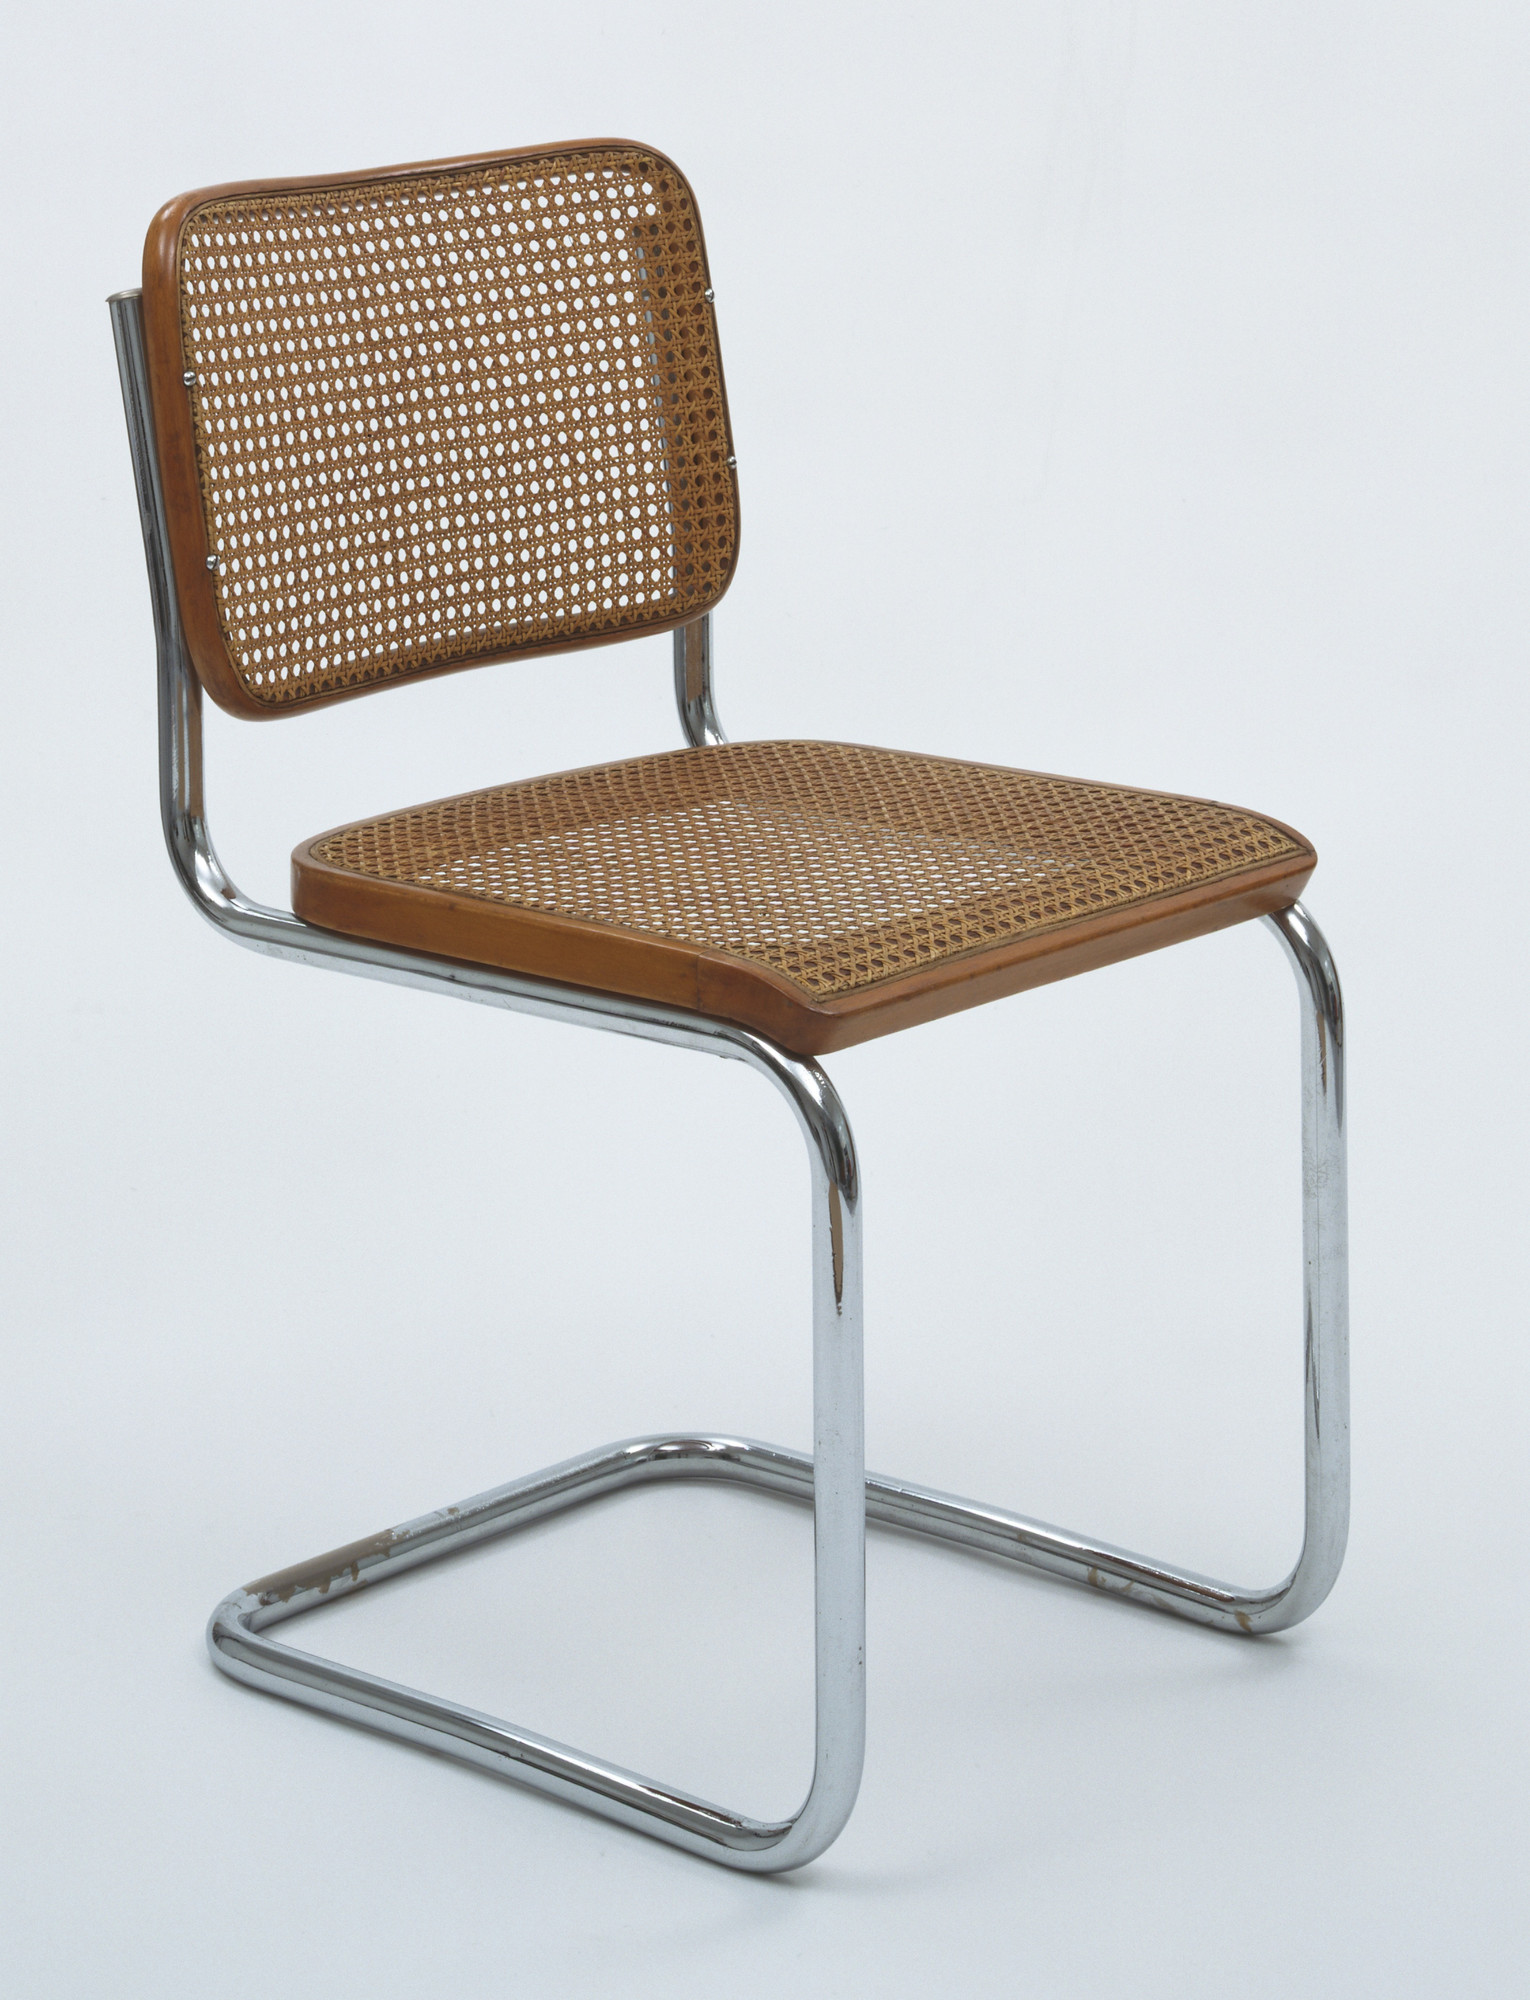 marcel breuer wassily chair moma the images collection of wassily